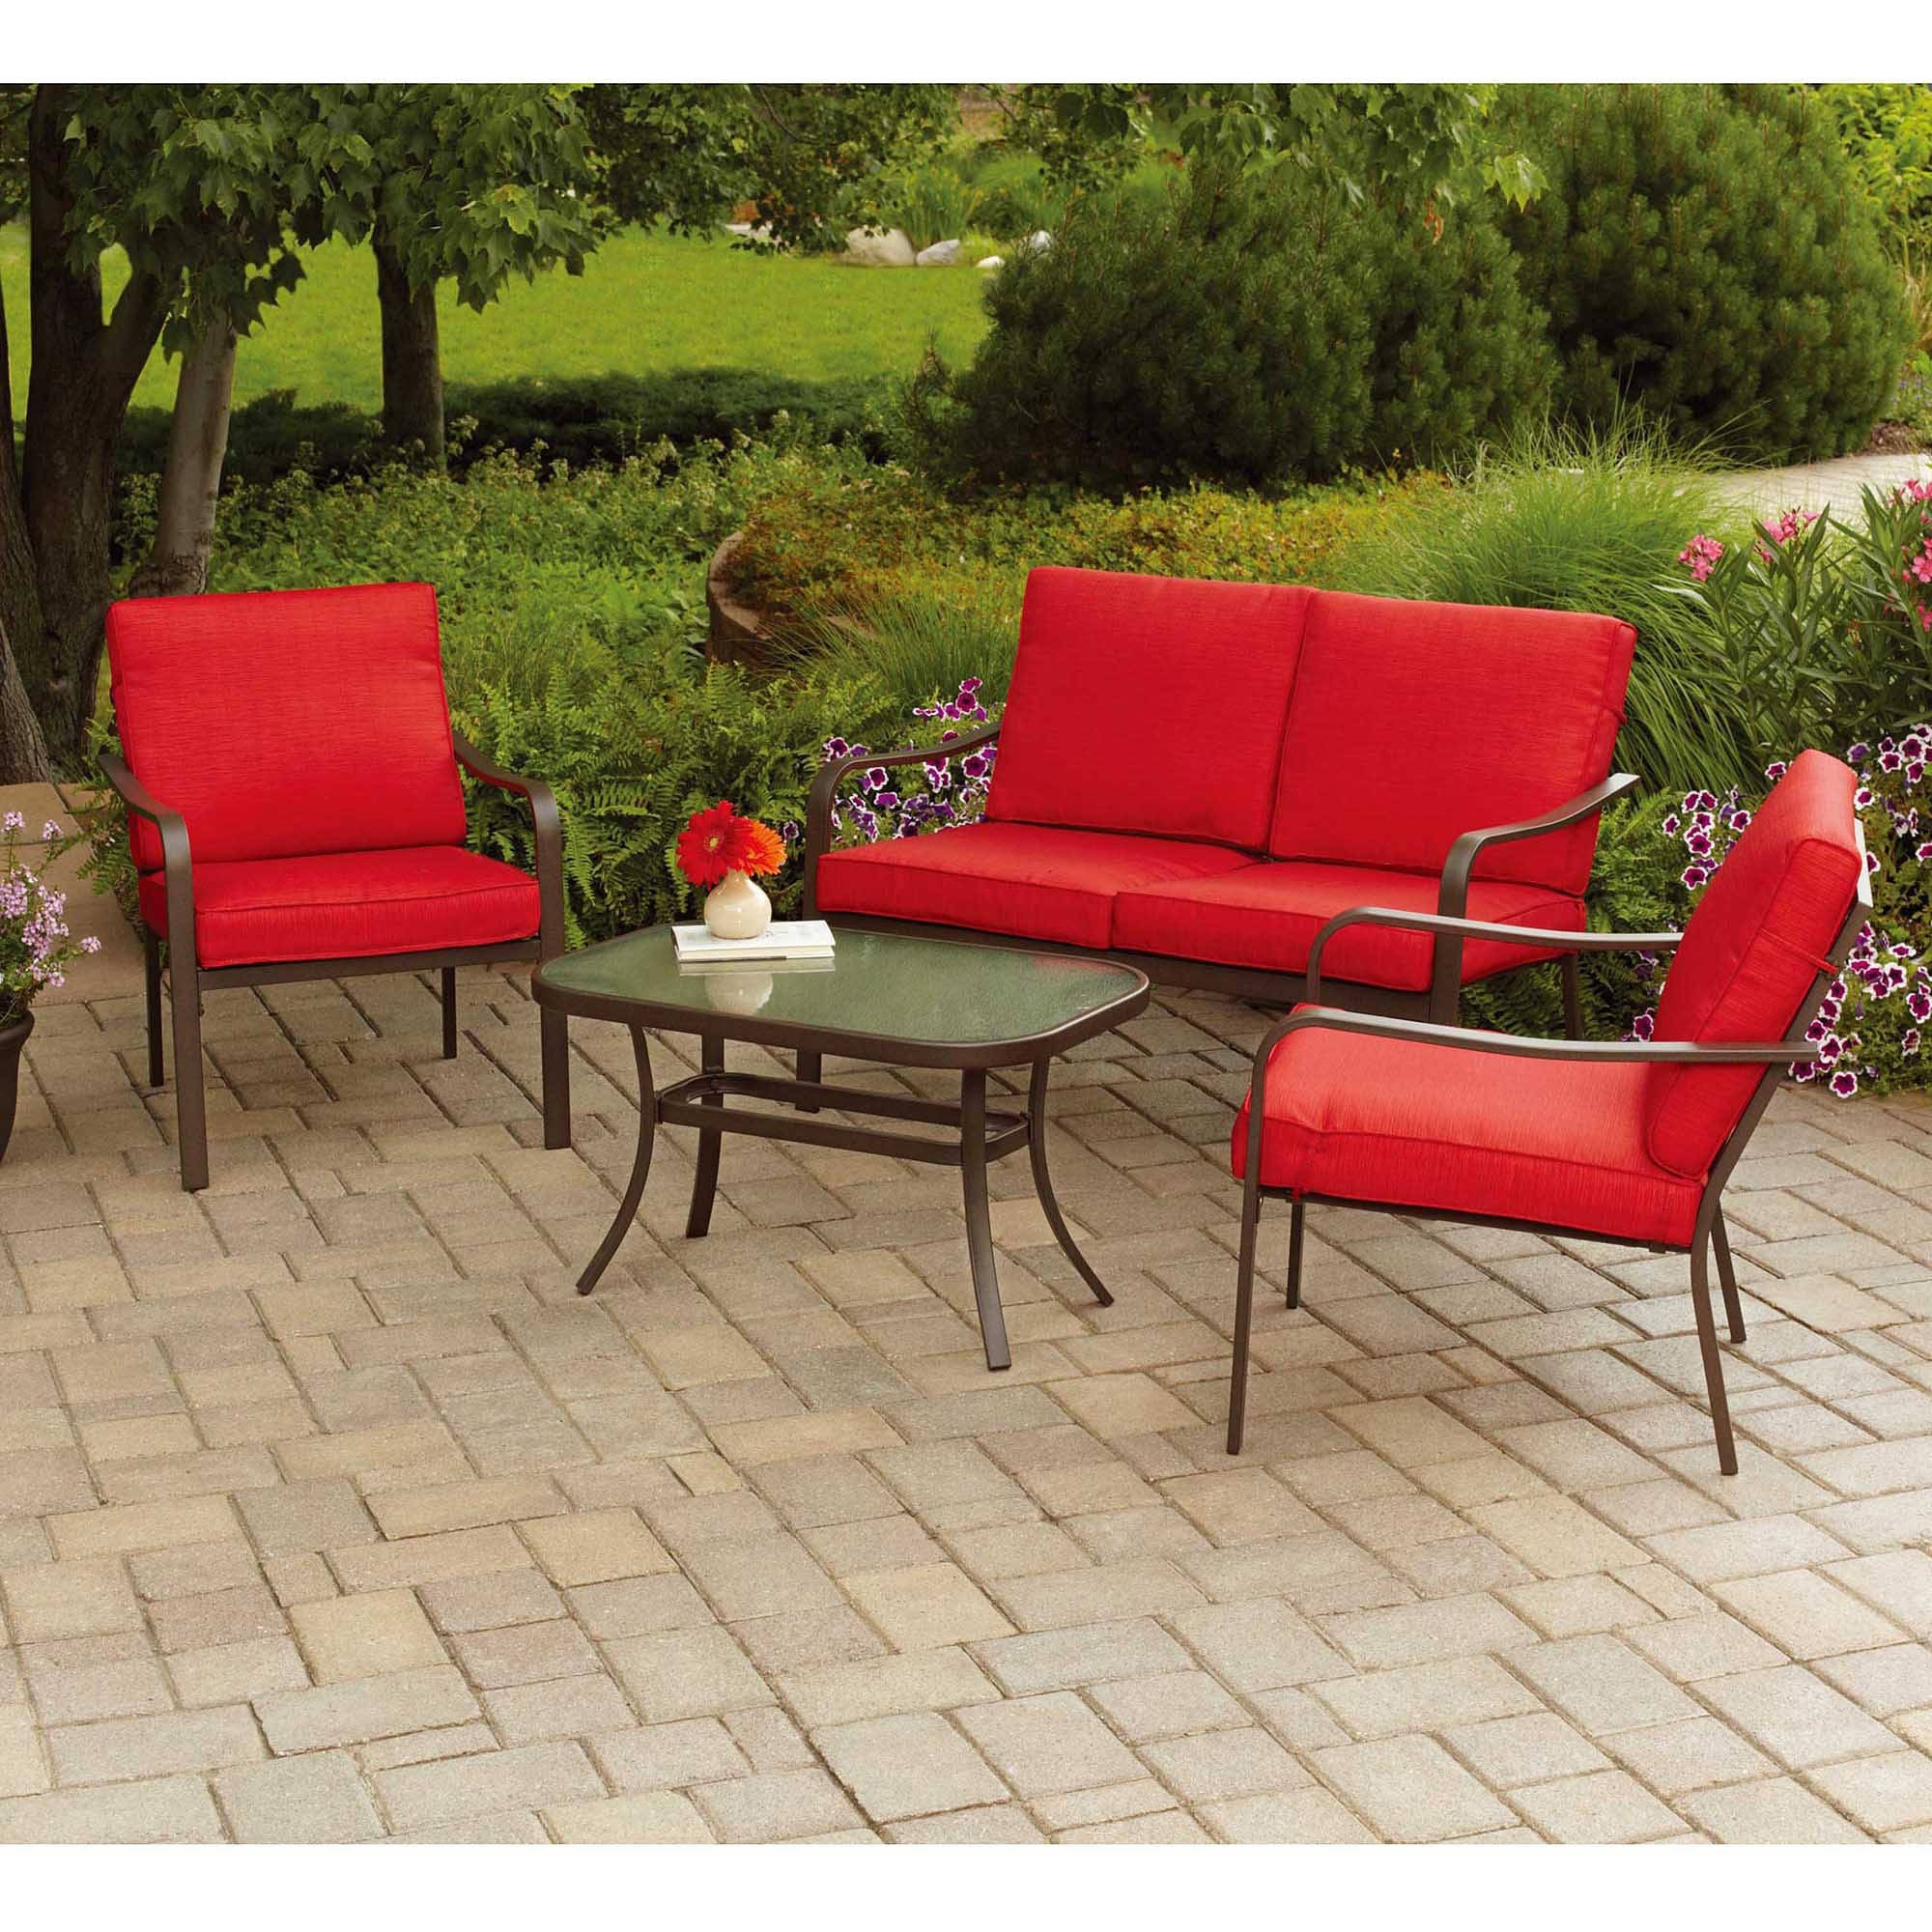 2018 Mainstays Stanton Cushioned 4 Piece Patio Conversation Set, Red Intended For Walmart Patio Furniture Conversation Sets (View 6 of 20)